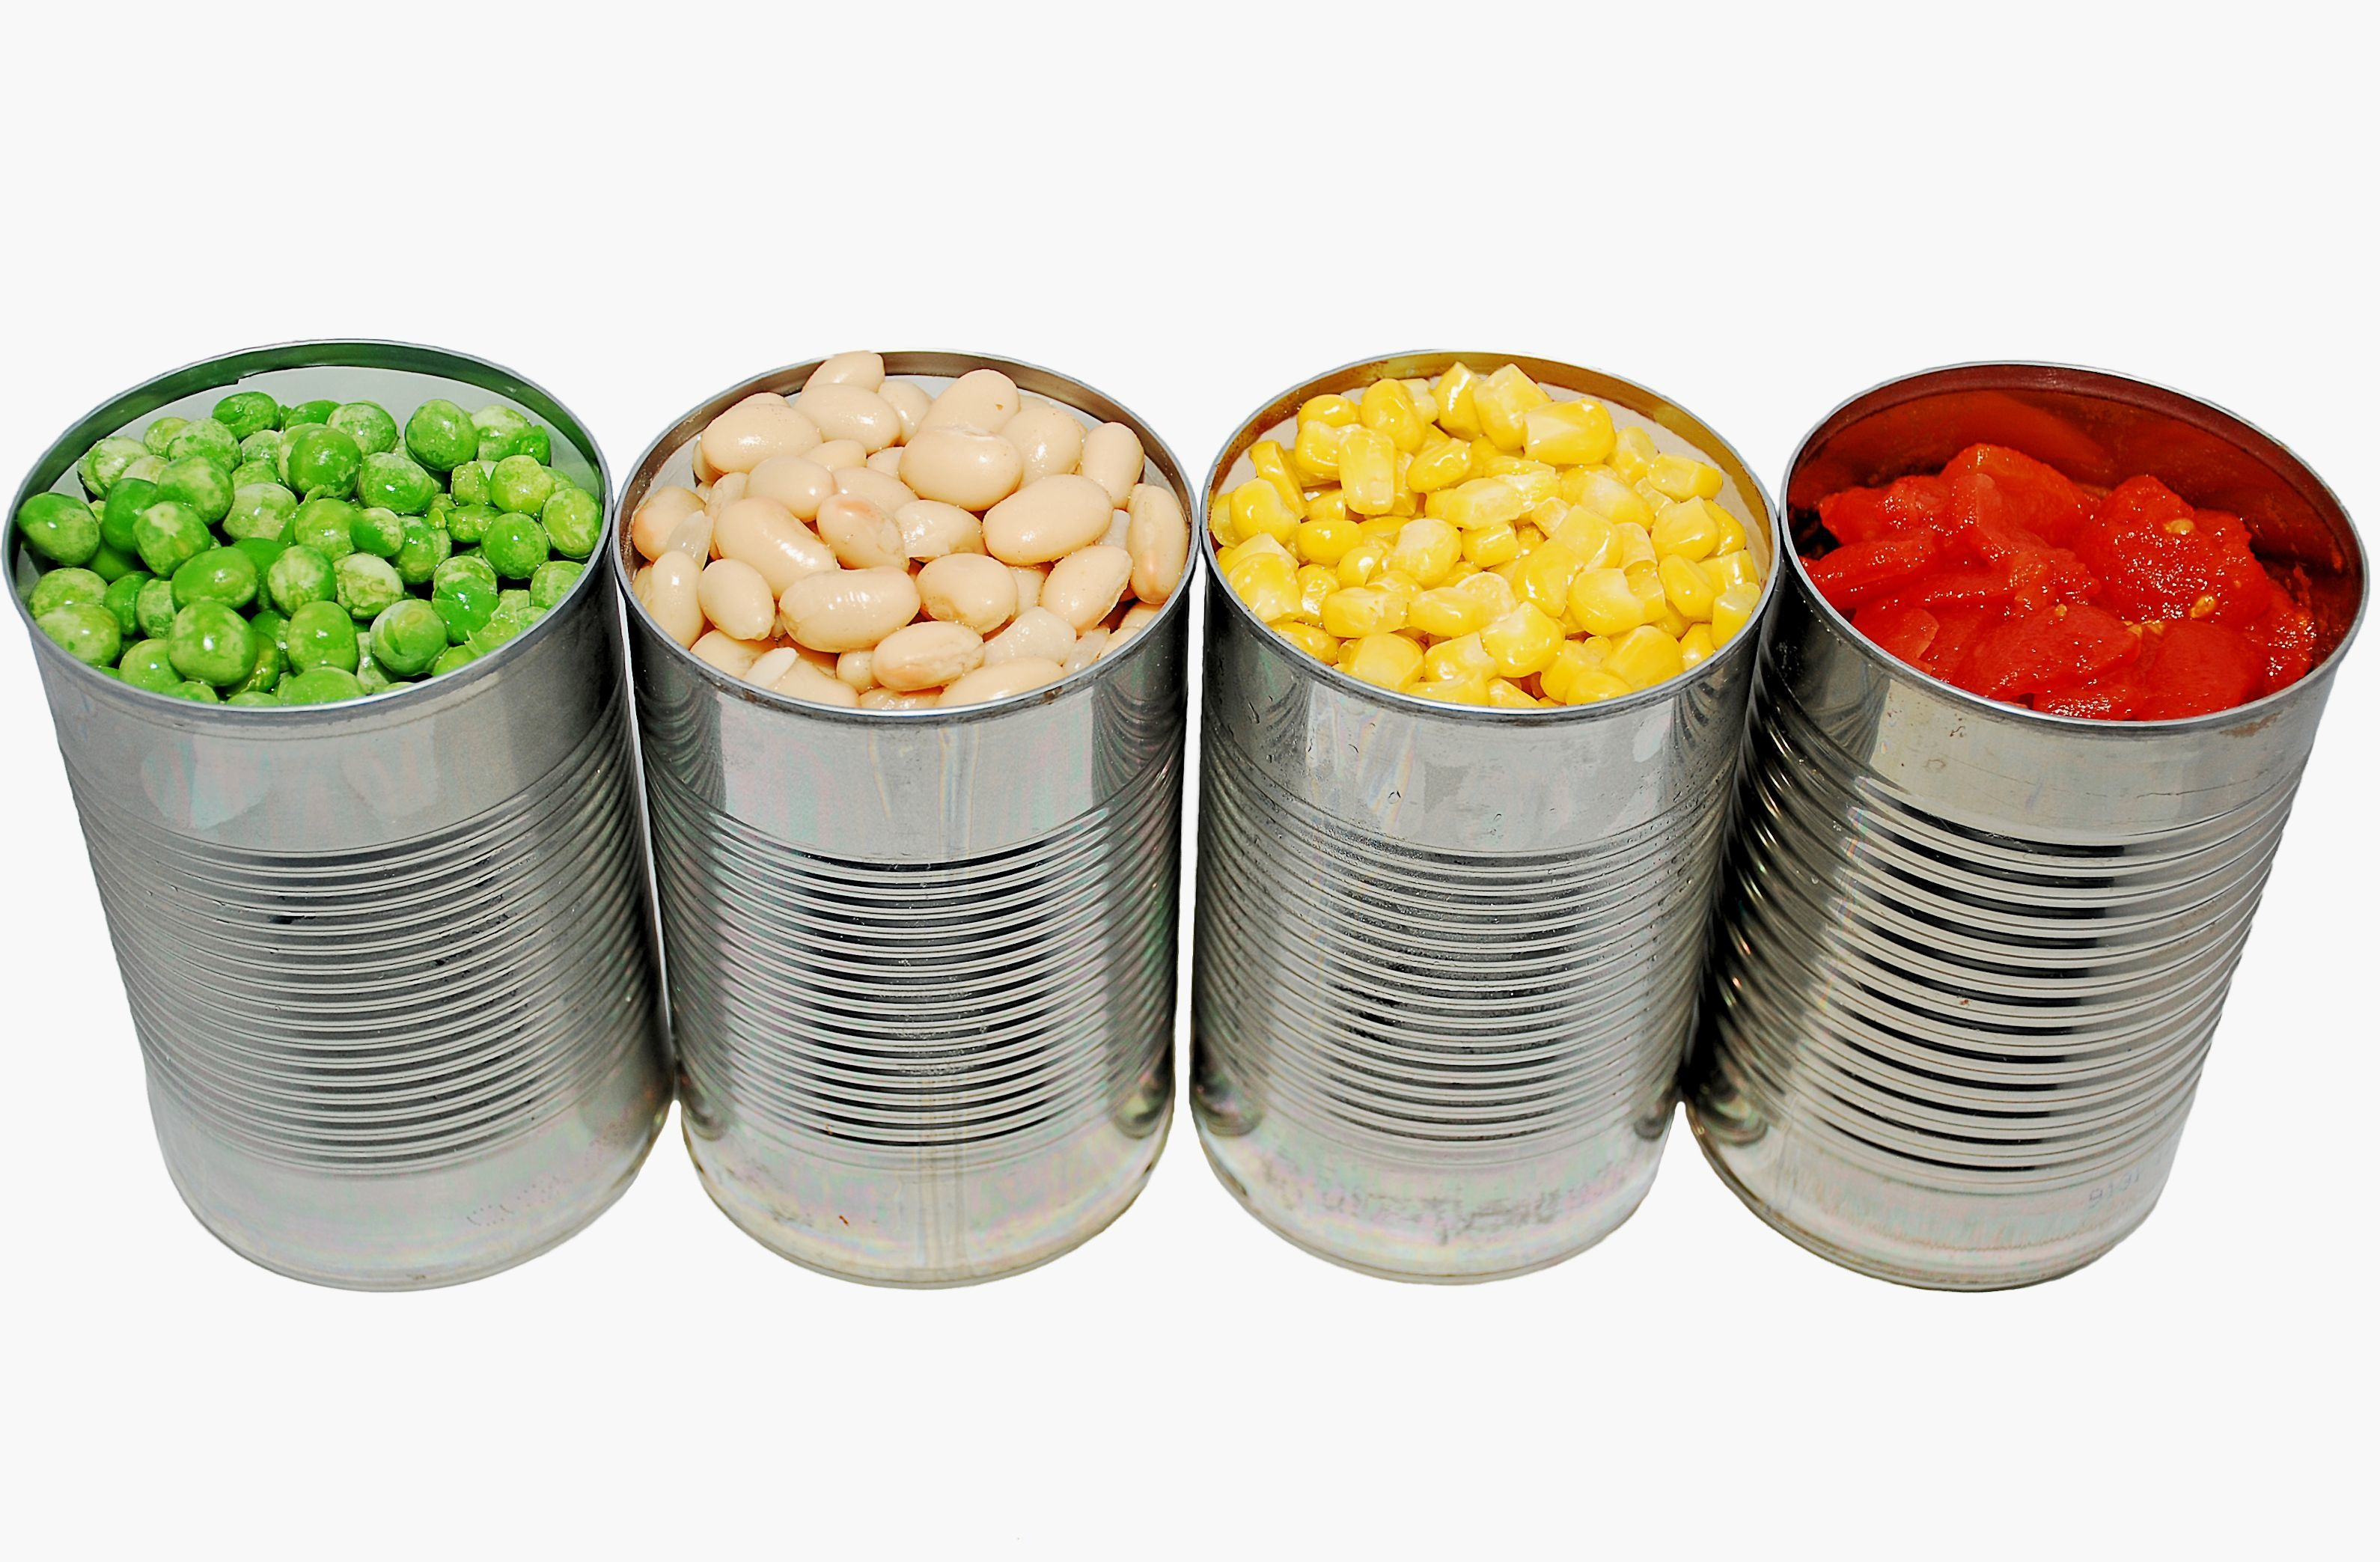 Which is best fresh, frozen, or canned produce? The